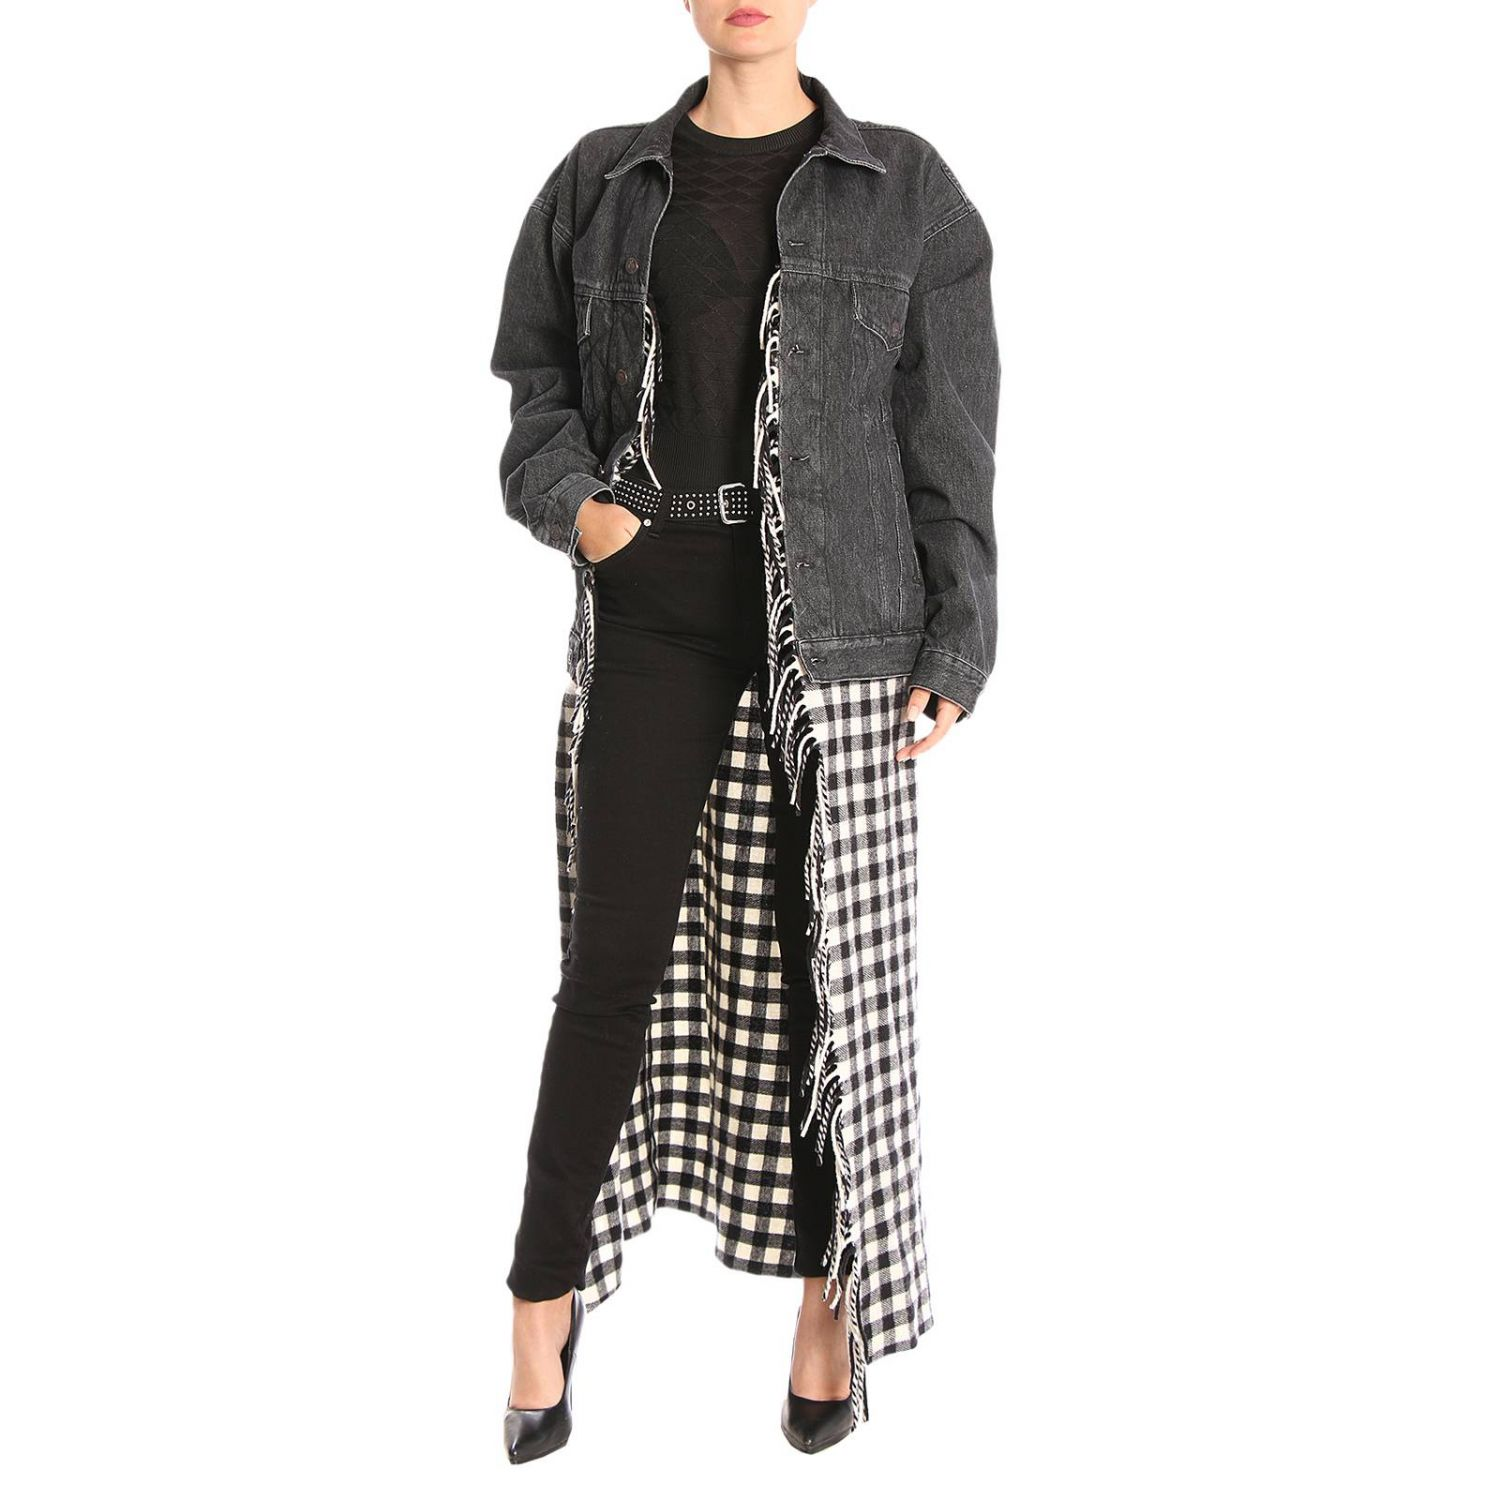 Giubbotto in denim over con maxi plaid check in stile coperta nero 5